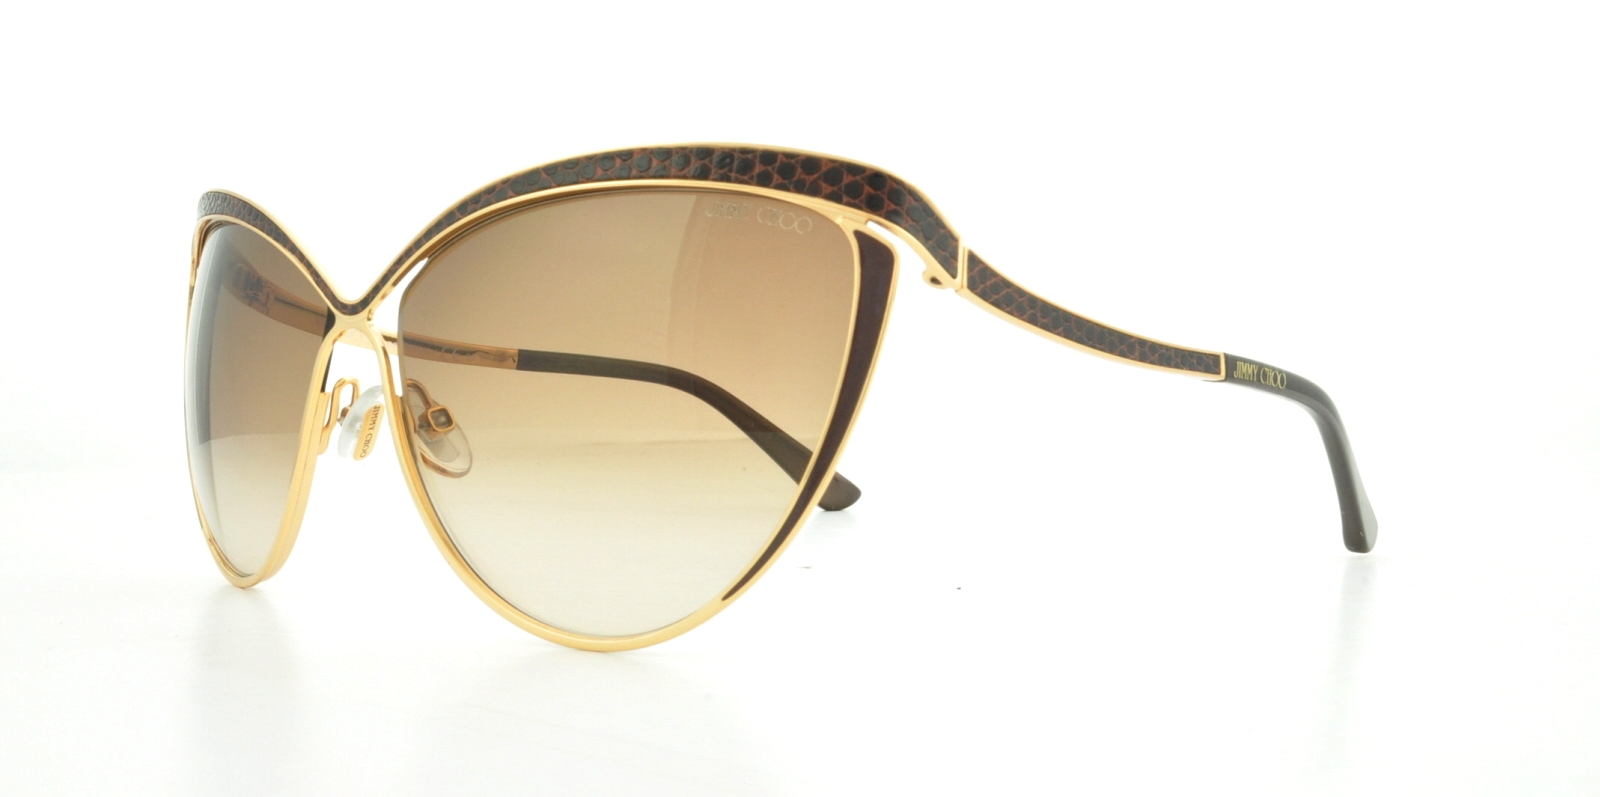 ad81b5b310 Designer Frames Outlet. Jimmy Choo POLLY S